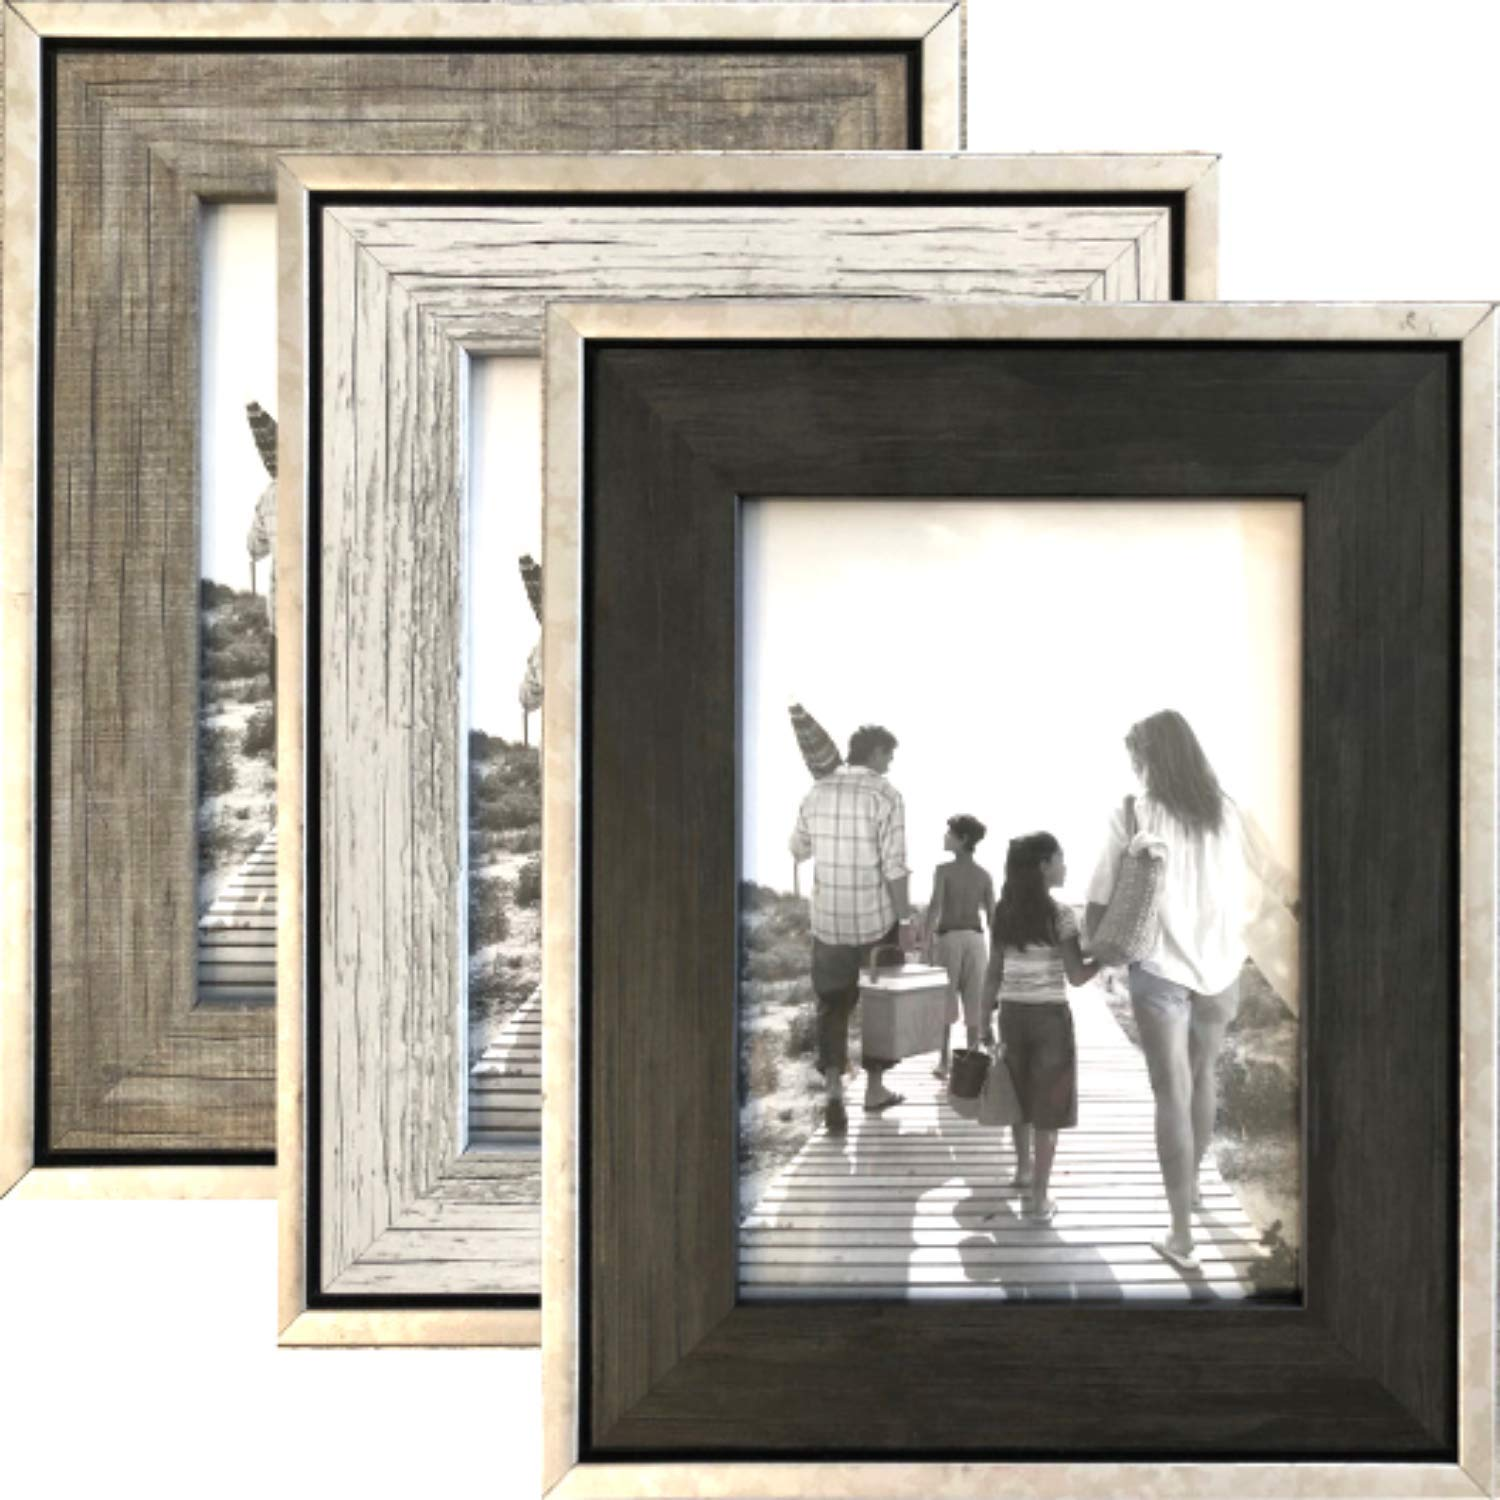 Tasse Verre 5x7 Rustic Frames (3-Pack) - Distressed Farmhouse Industrial Frame - Ready to Hang or Stand - Built-in Easel - Silver Galvanized Metal Look with Wood Insert by Tasse Verre